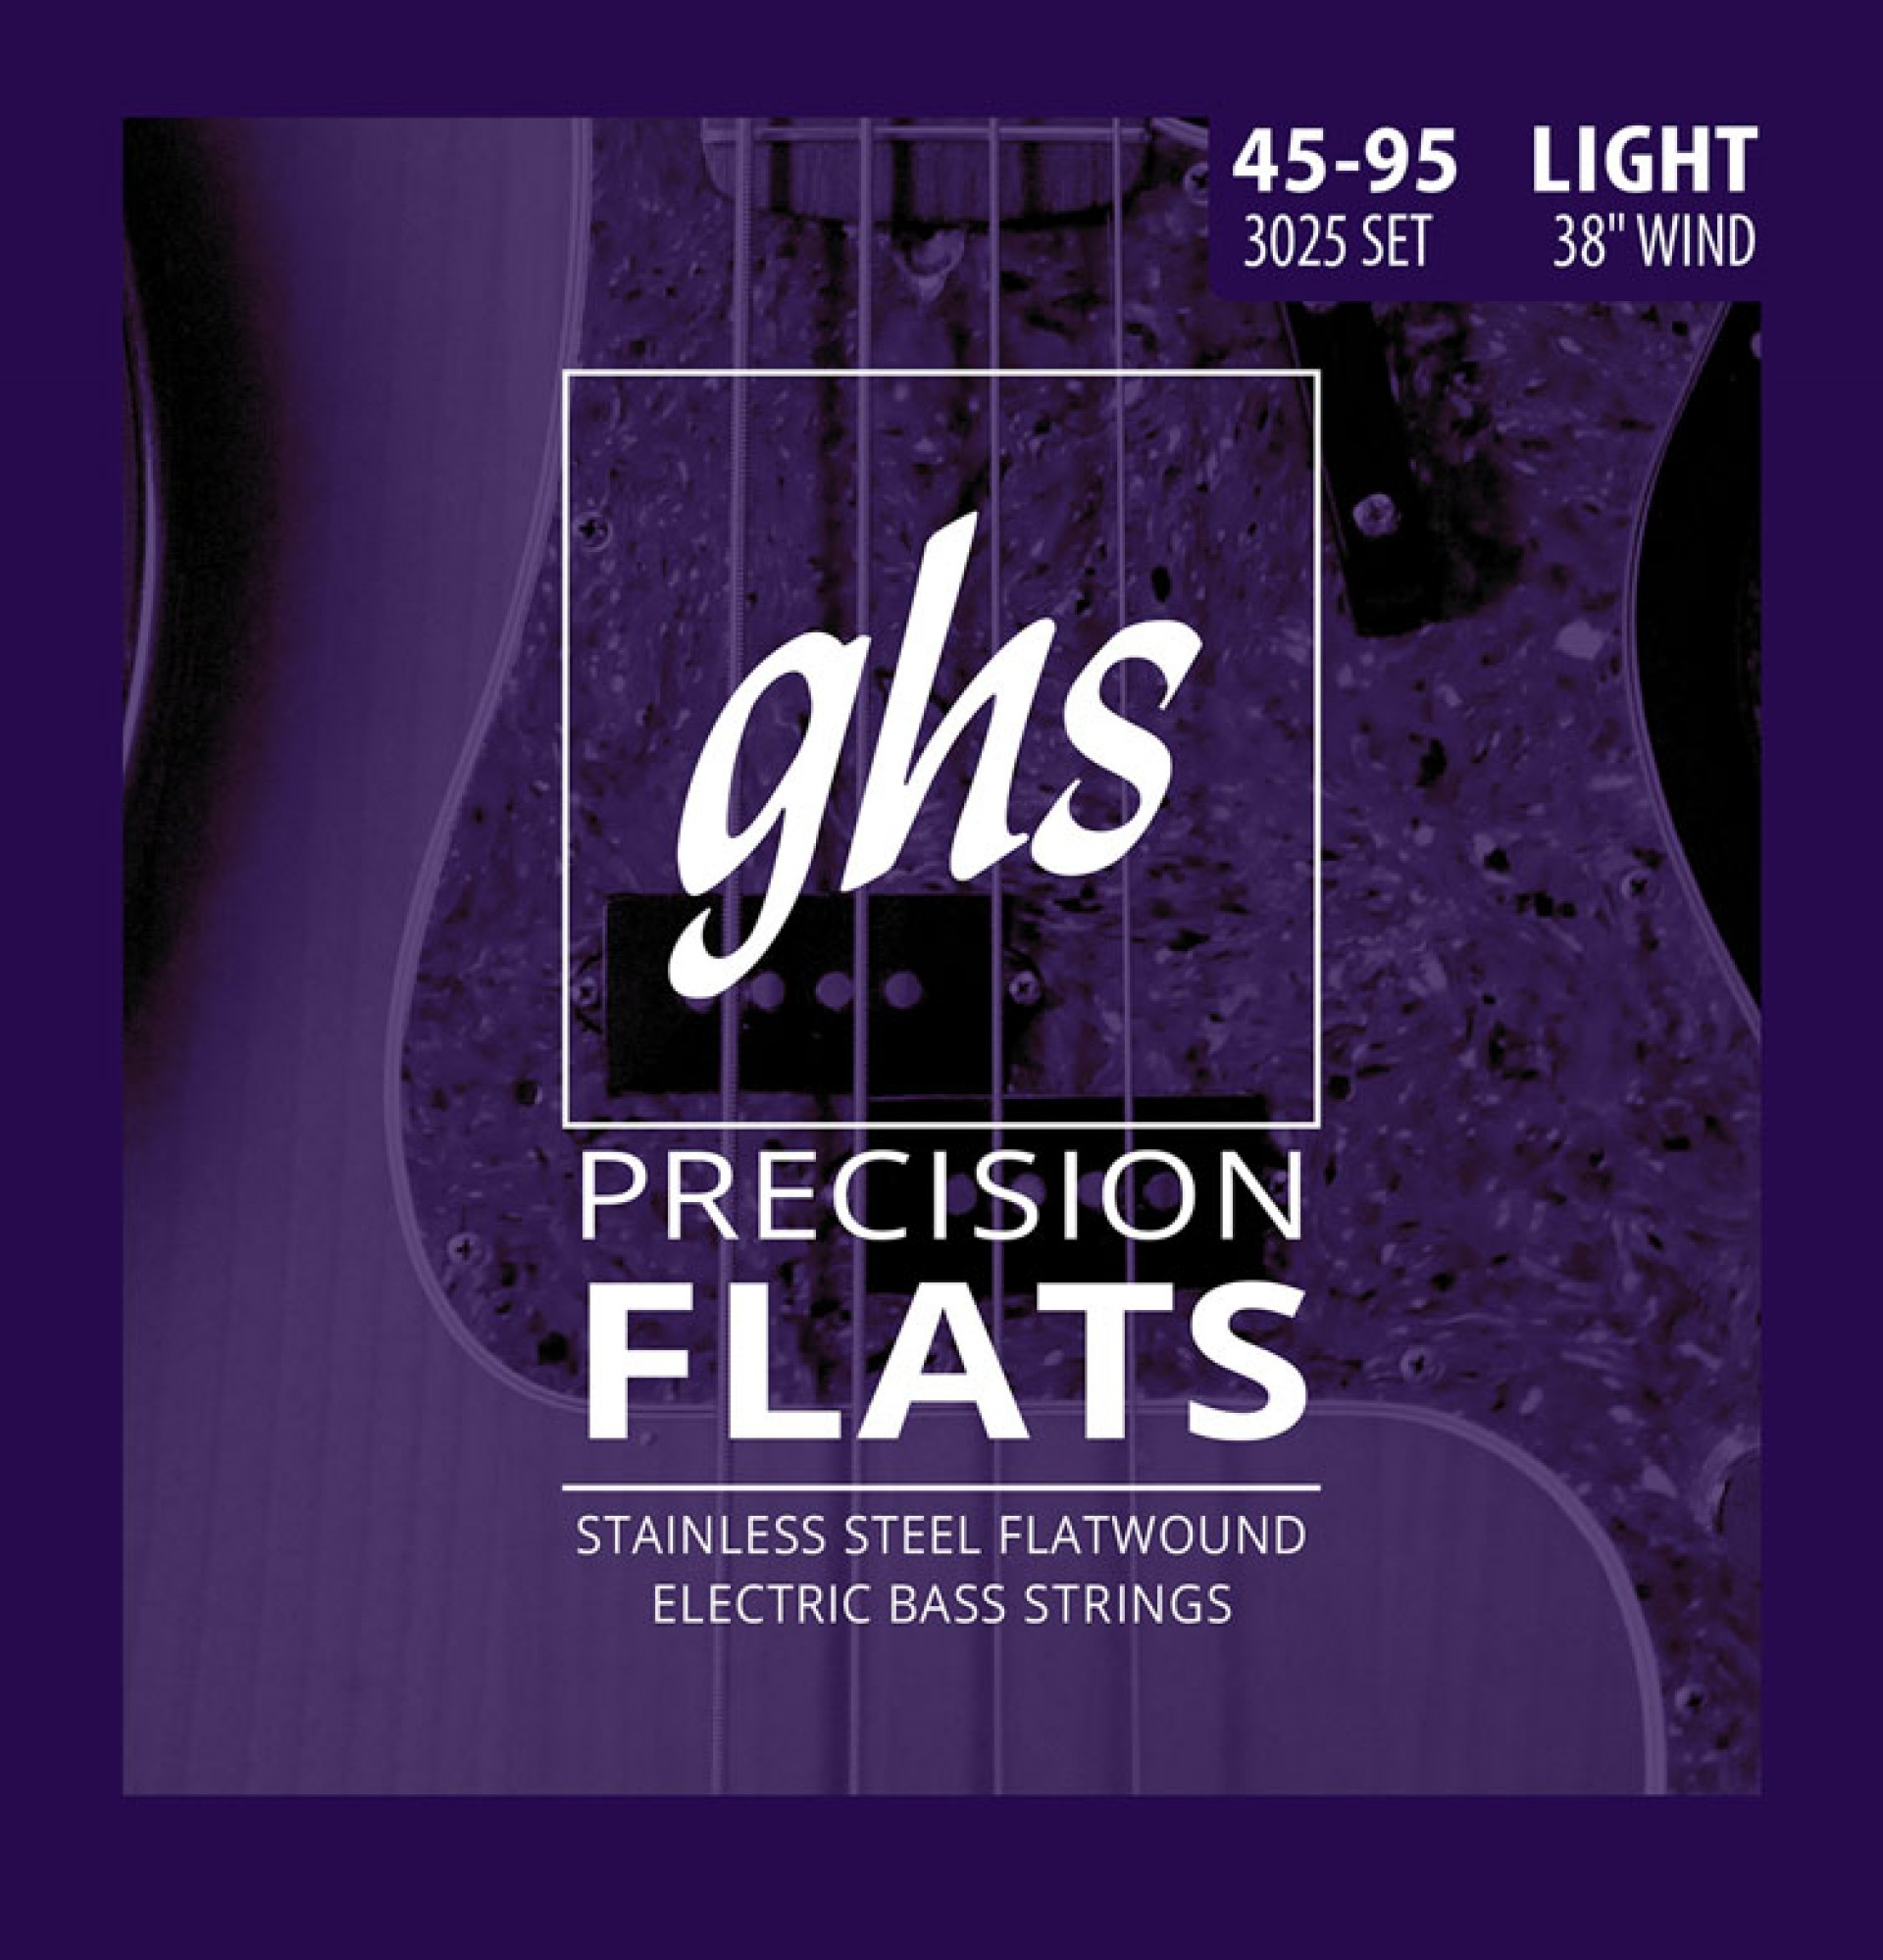 GHS 3025 Precision Flats Flatwound Bass Strings Long Scale Plus - 4-String 45-095 Light